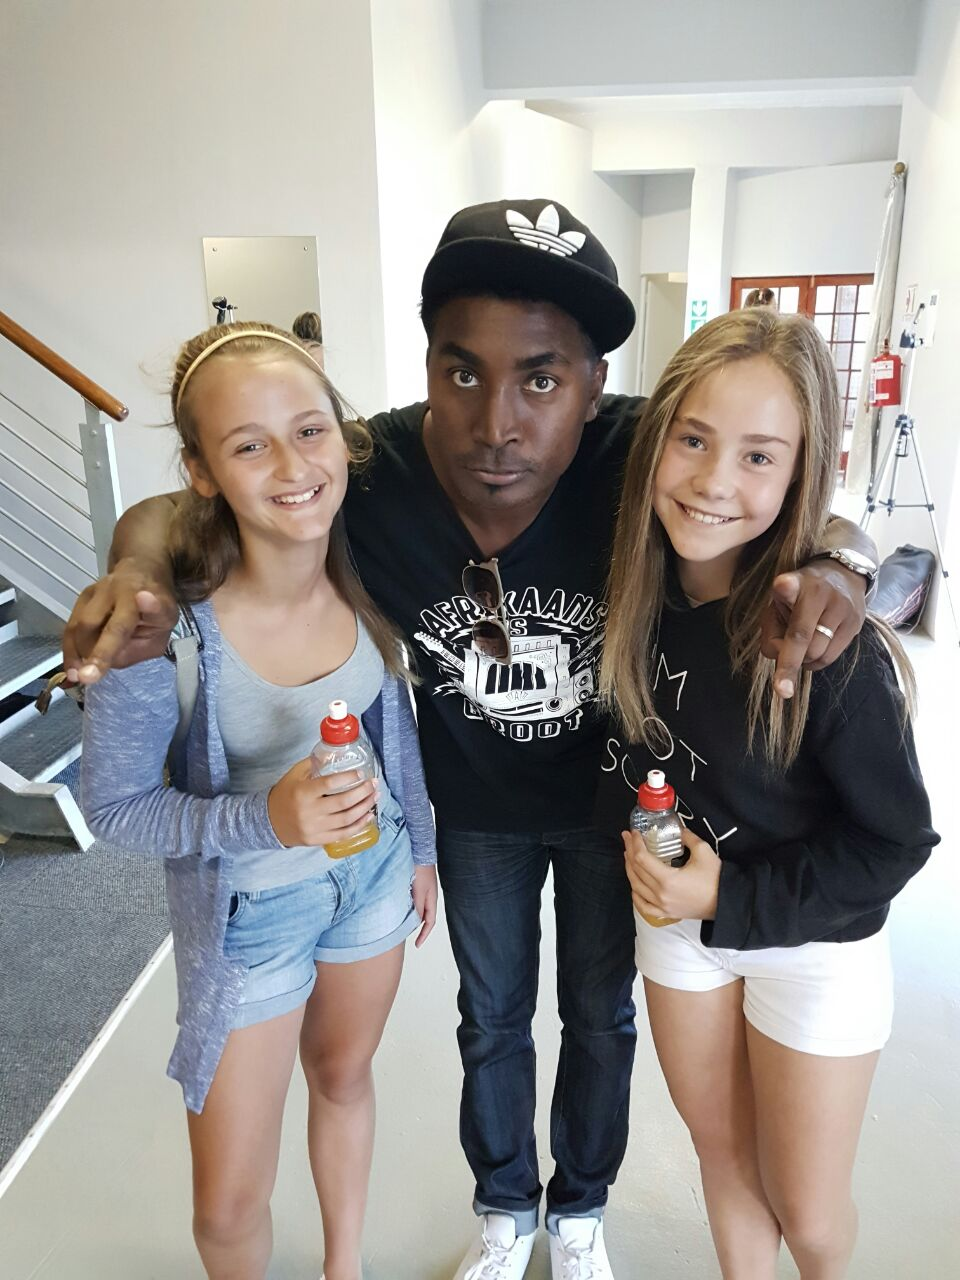 Henties Juices with Emo Adams and Fans